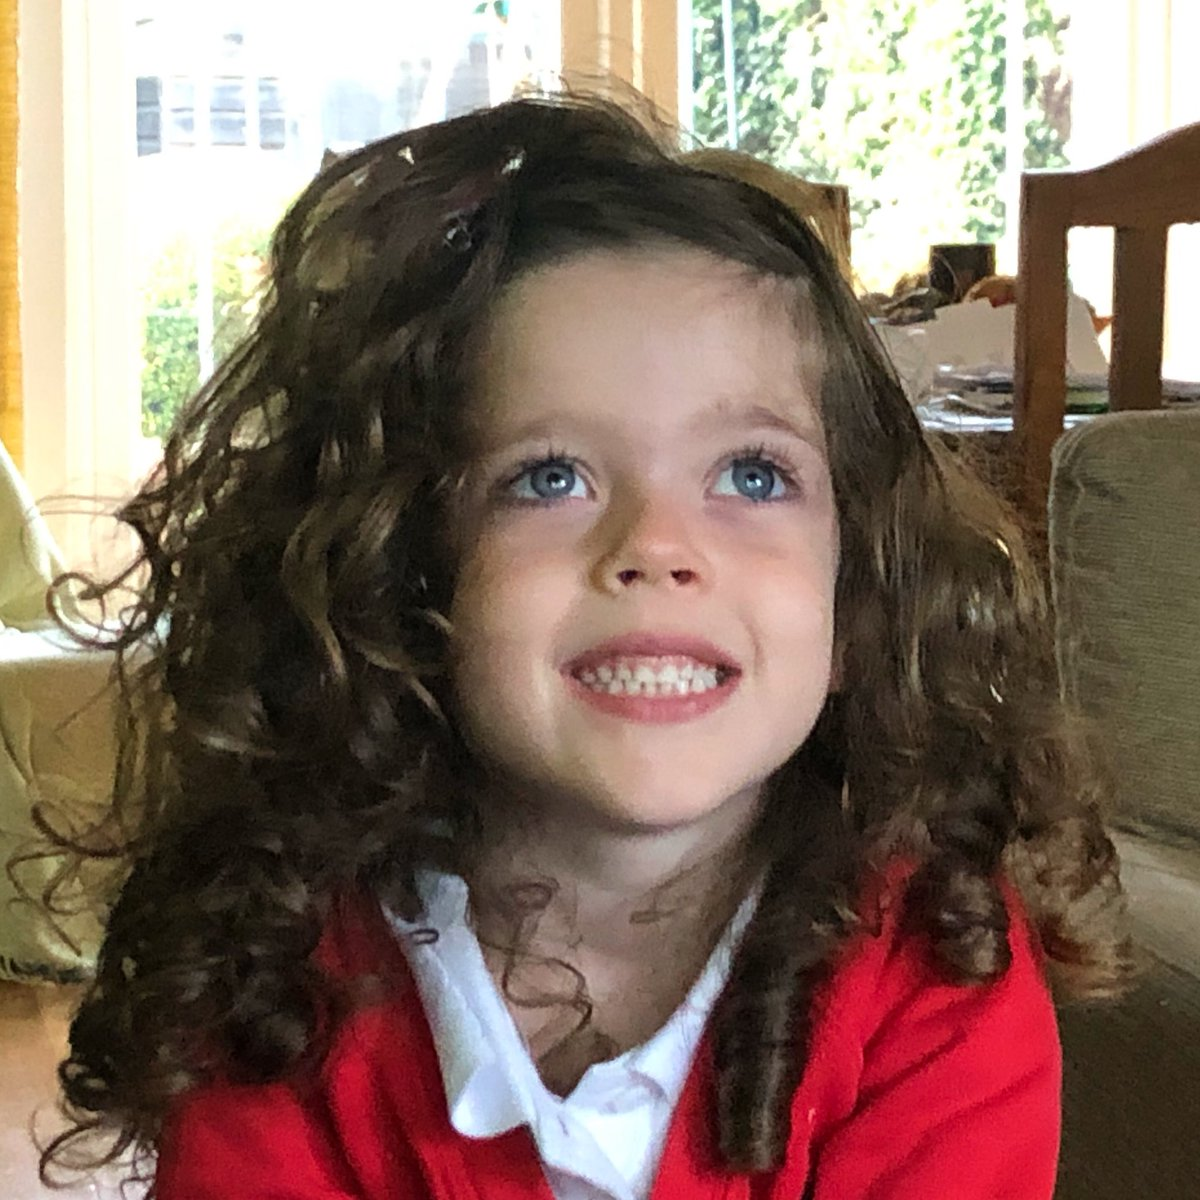 1/3 She's growing up so fast! 2020 seems to be whizzing by in a flash, which means it will soon be 3 years since Freya's last cardiology follow up...  #KawasakiDisease #Awareness #Research https://t.co/tsFwQa7jn9